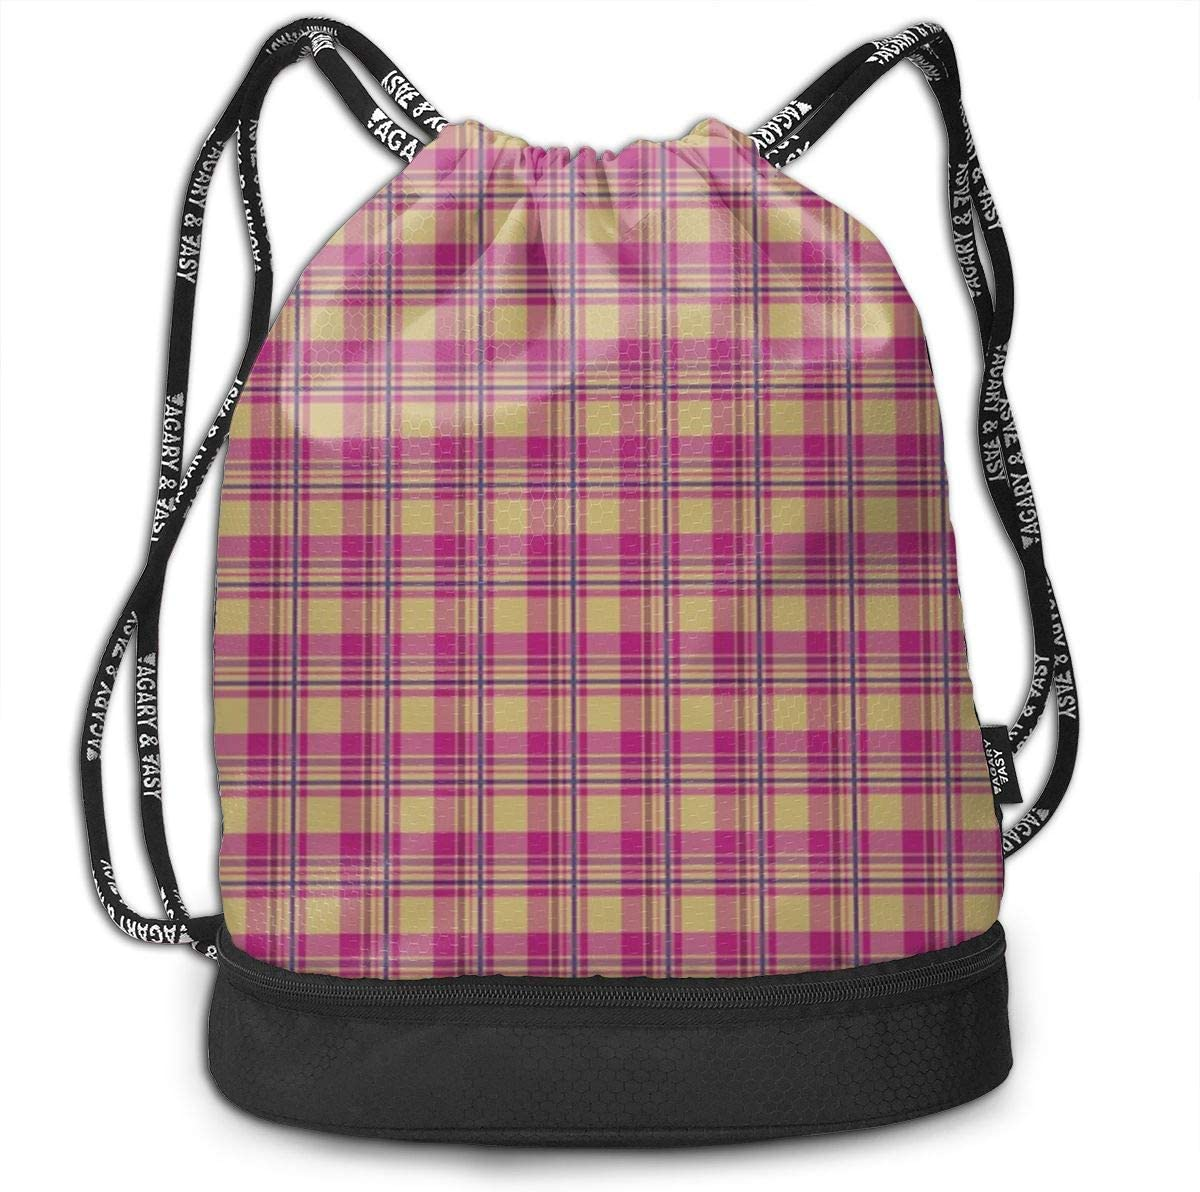 HUOPR5Q Pink-Plaid-Pattern Drawstring Backpack Sport Gym Sack Shoulder Bulk Bag Dance Bag for School Travel